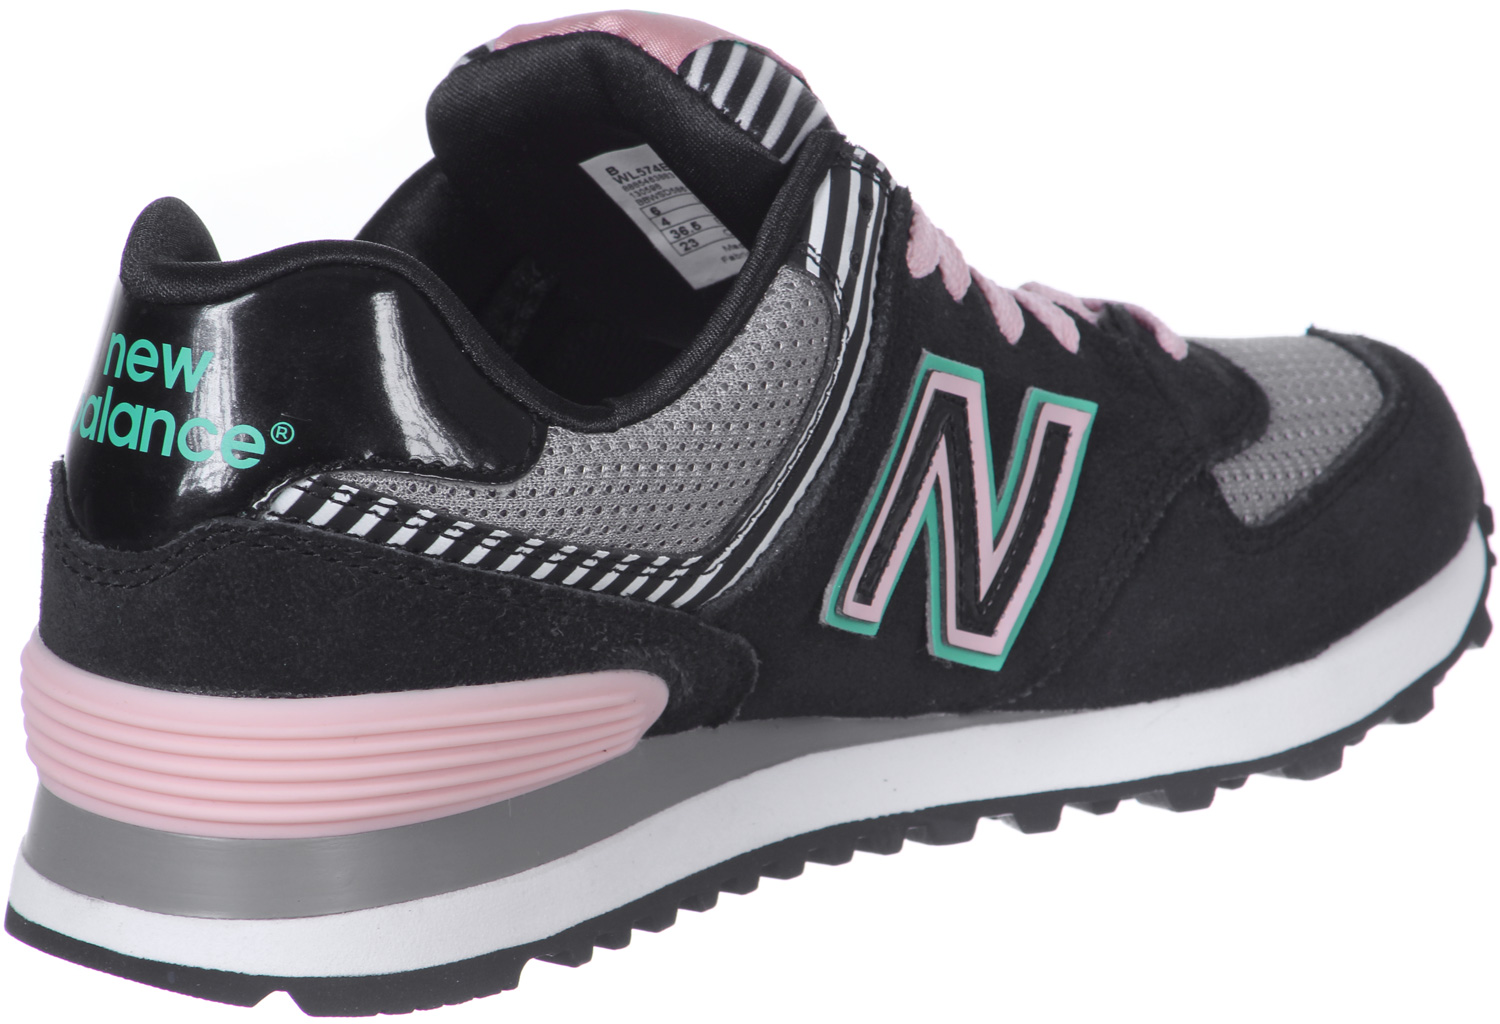 152fd4e439f4 ... authentic new balance 574 rose et vert aa688 d80e6 ...